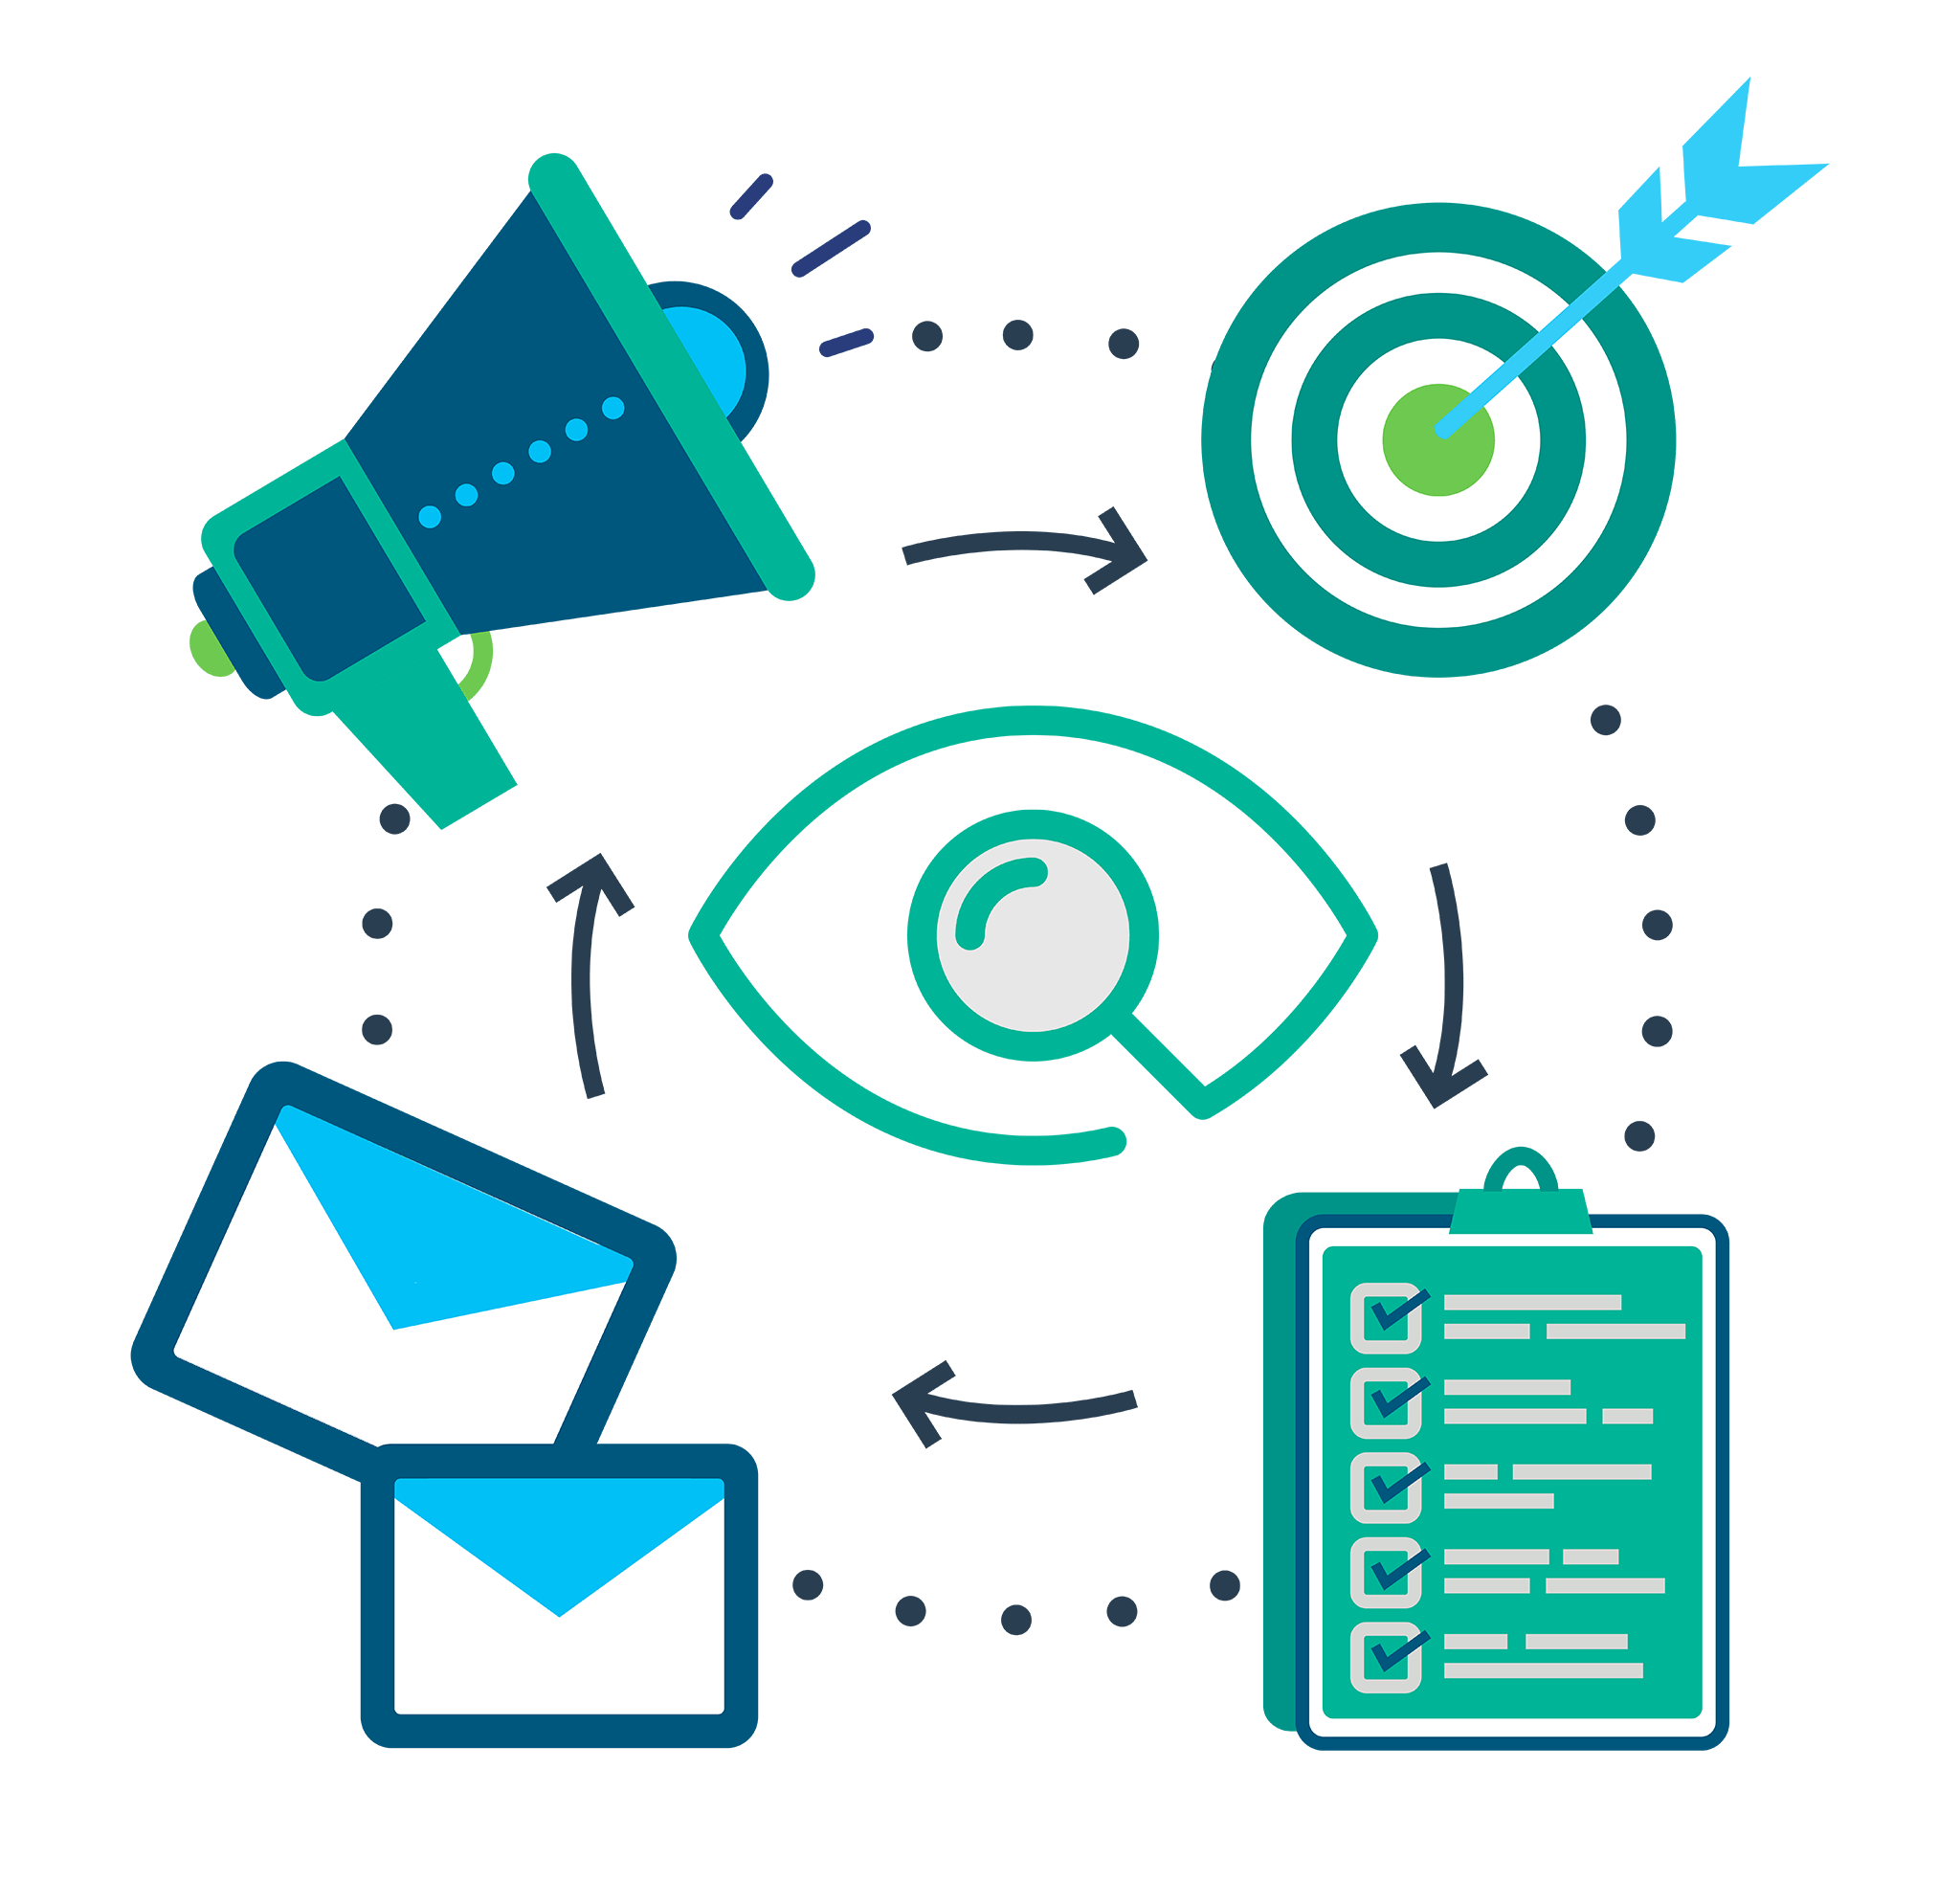 Illustration showing the Direct Mail journey